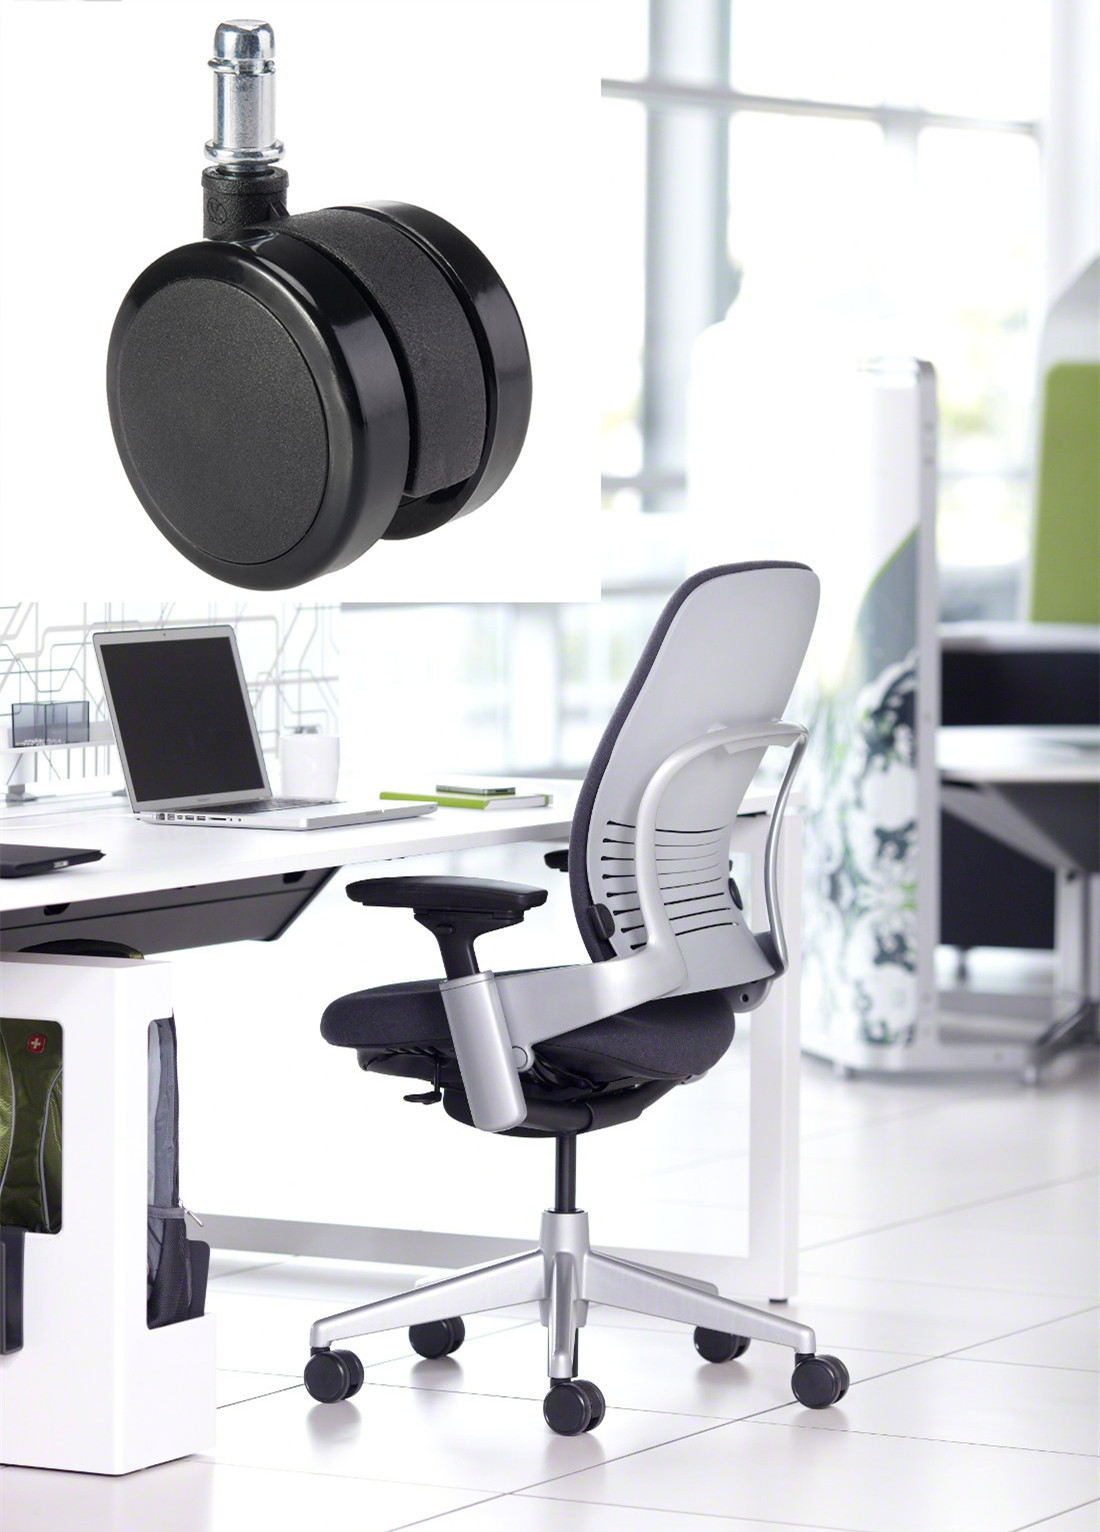 where to purchase sgs certified office chair casters for hardwood floors fittings